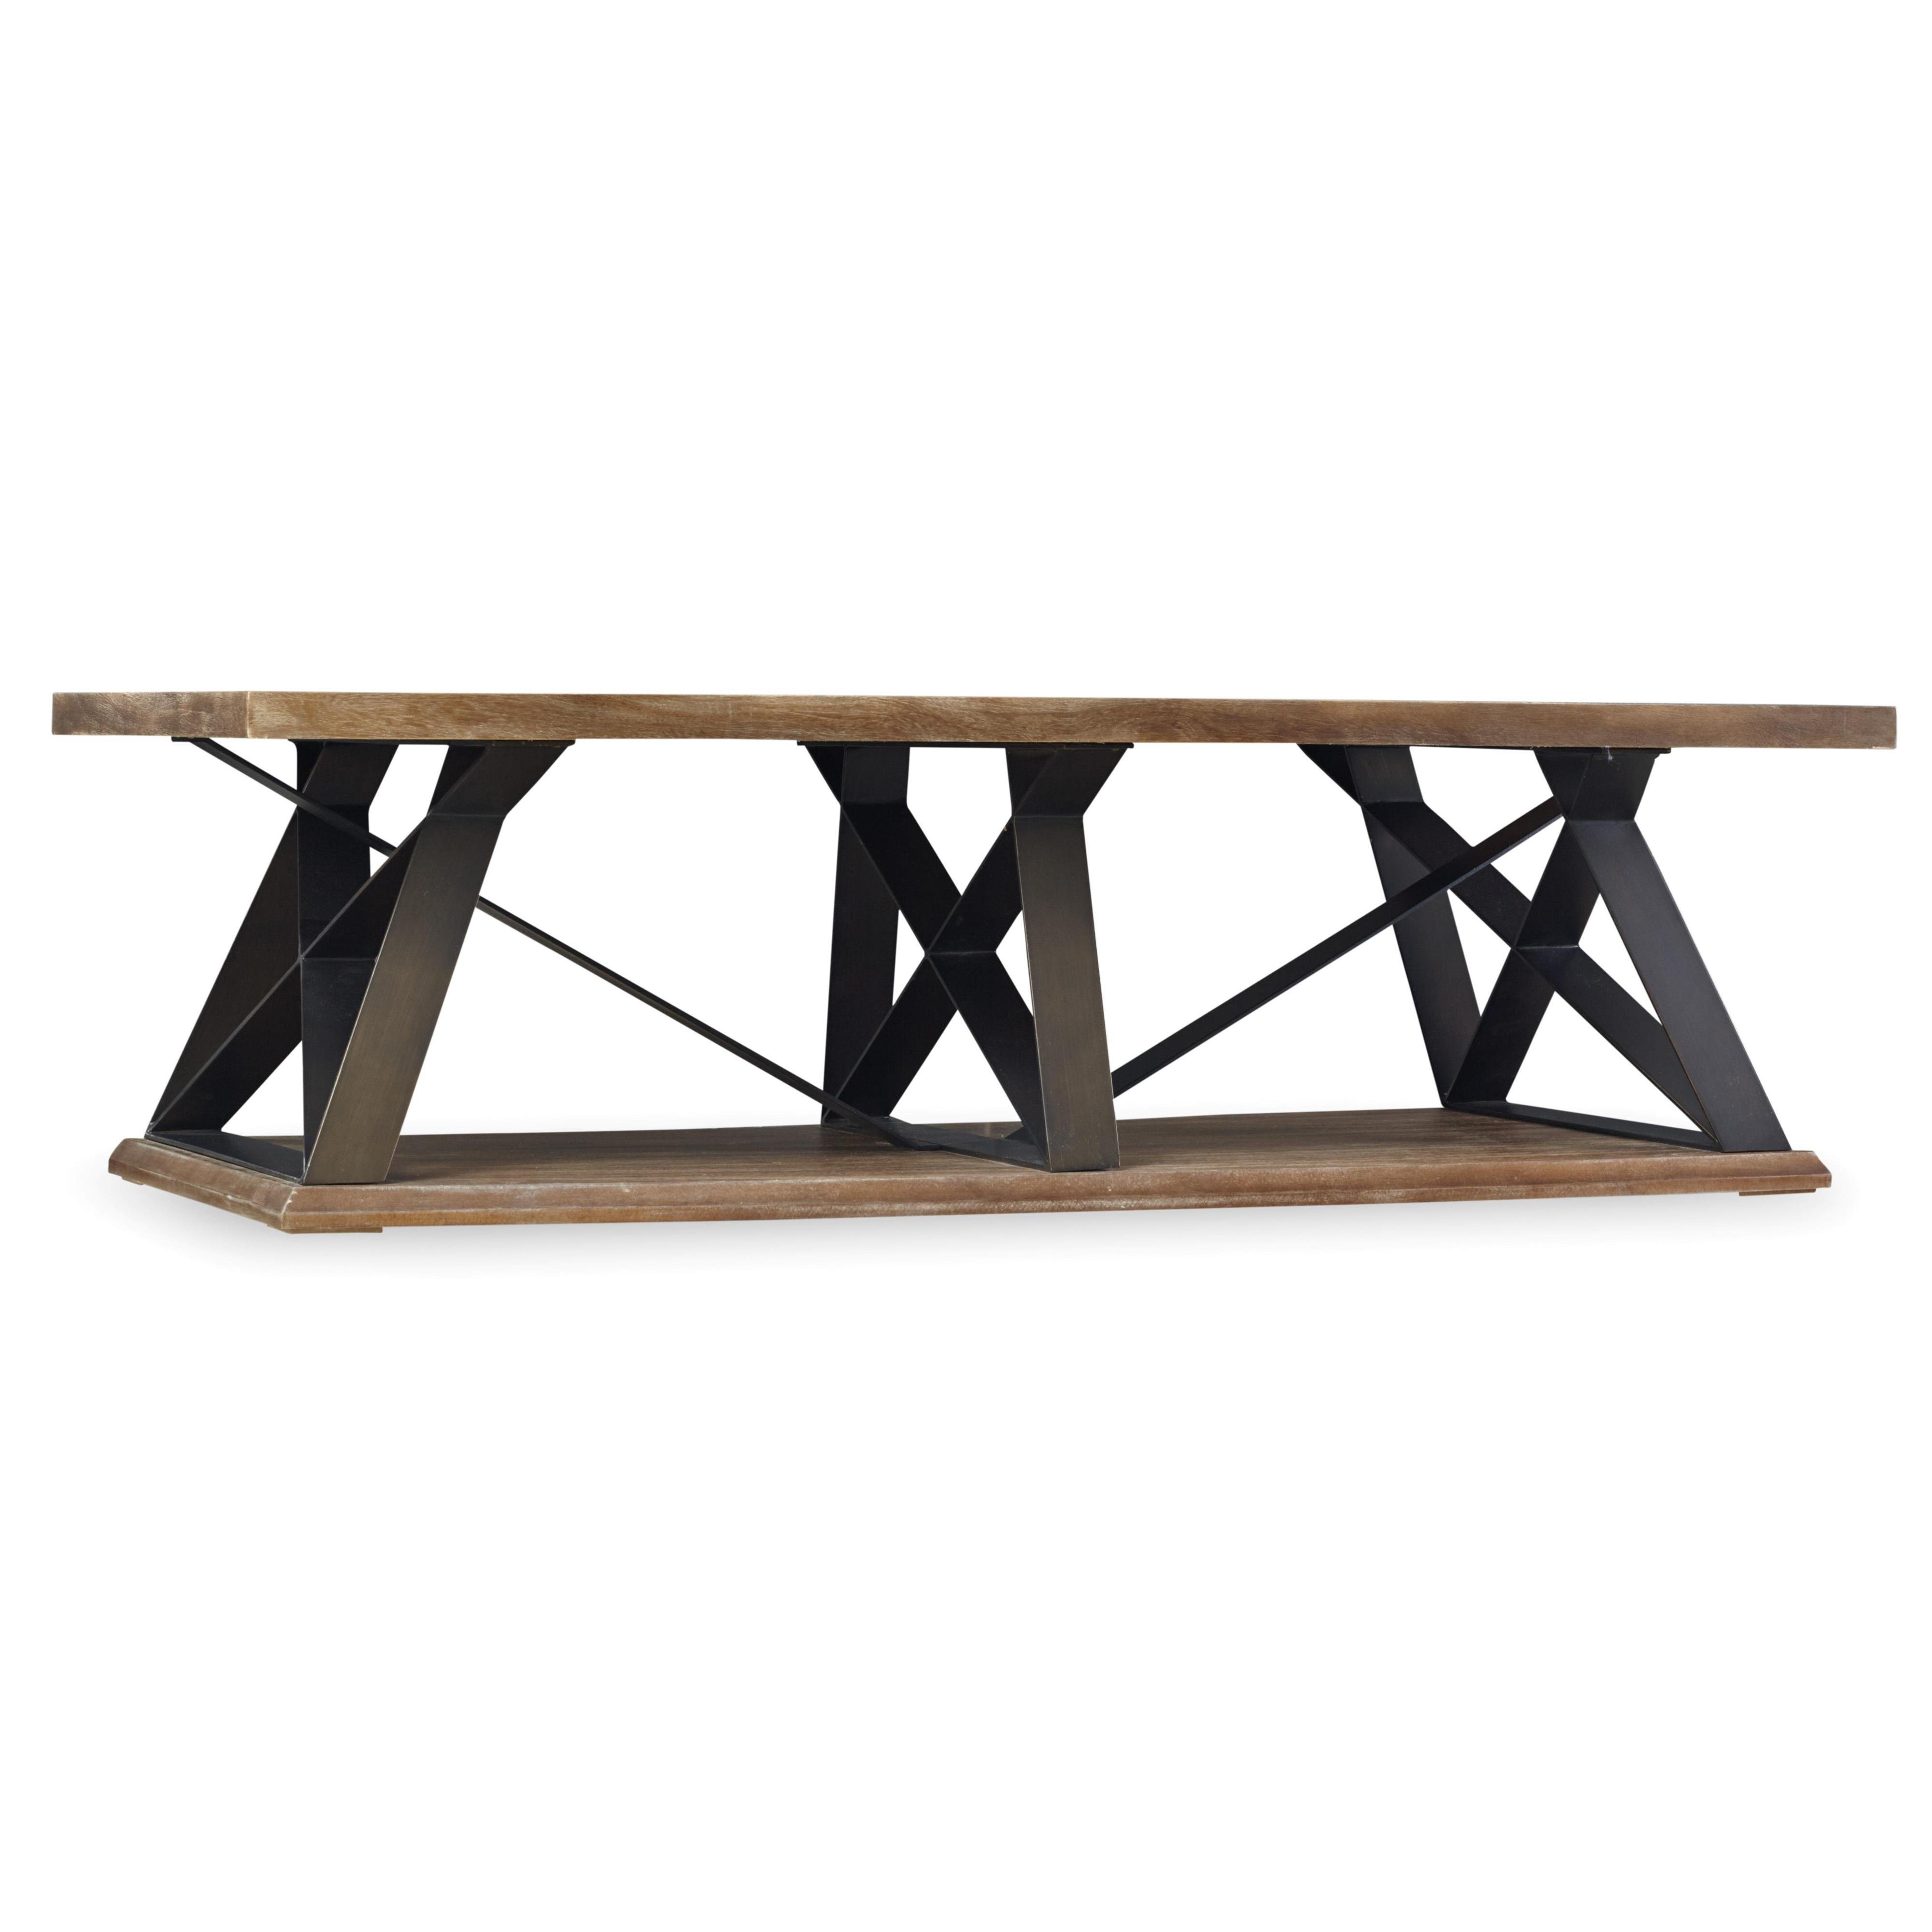 Hooker Furniture Studio 7H Crisscross Trestle Cocktail Table - Item Number: 5382-80110